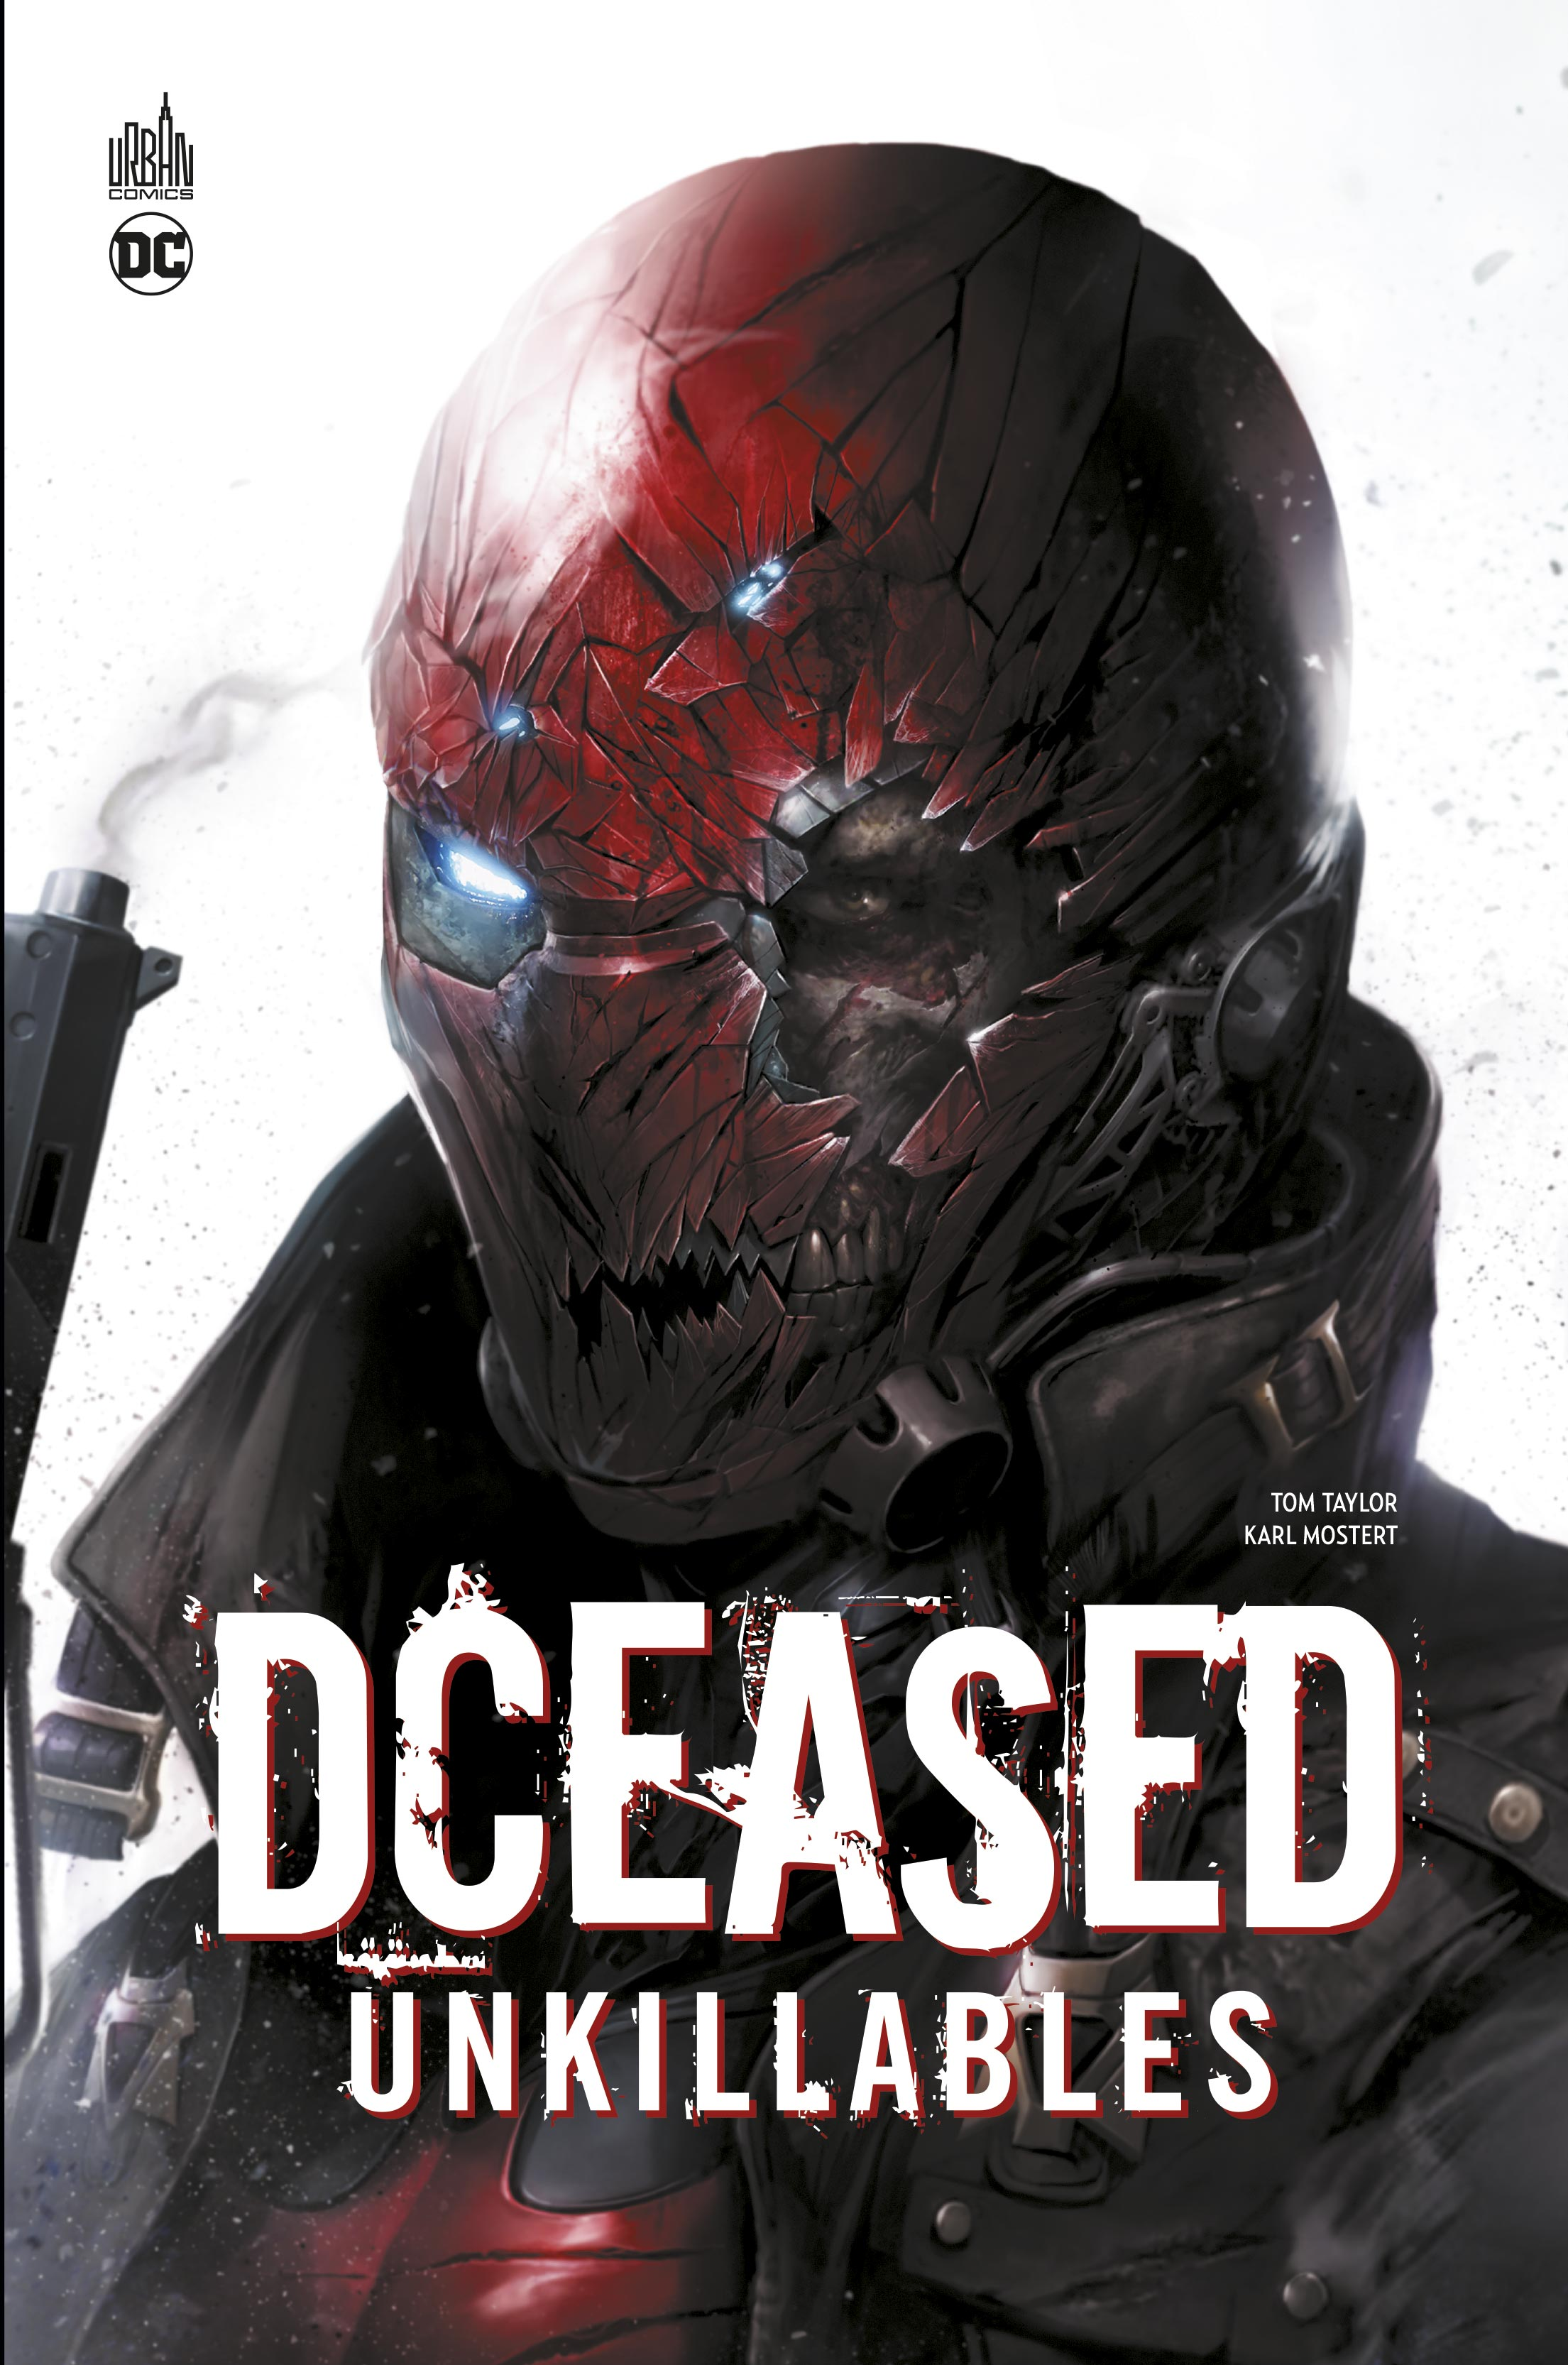 Dceased - Unkillables 1